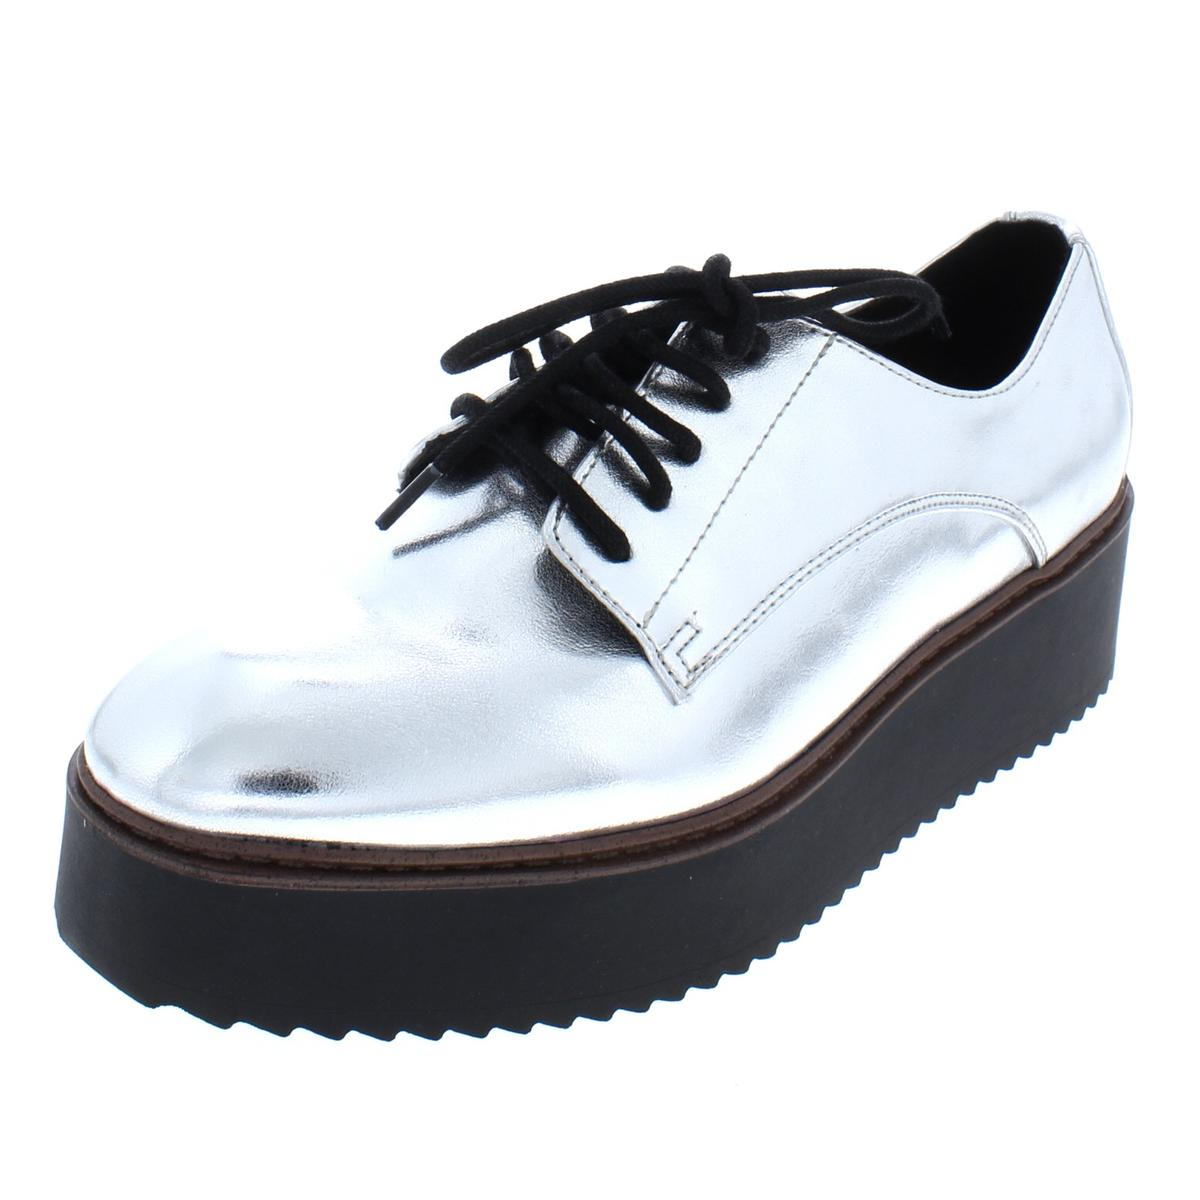 e5022603c44a Details about Madden Girl Womens Written Platform Fashion Oxfords Sneakers  BHFO 5135